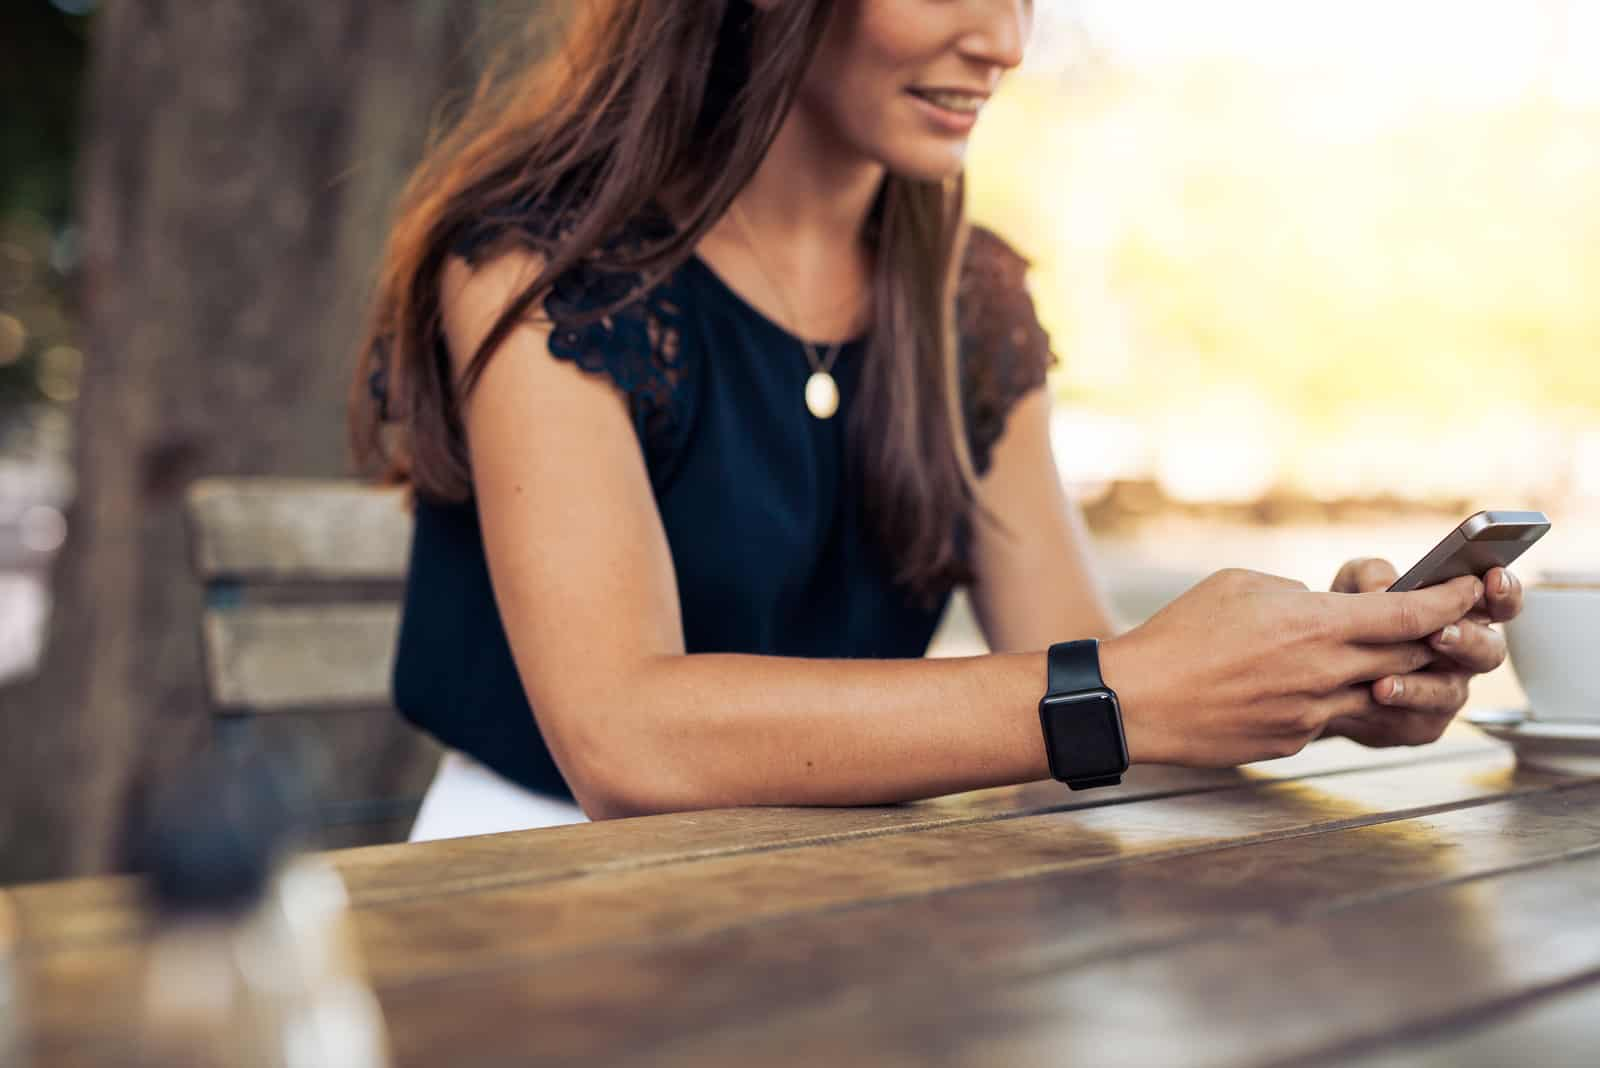 a smiling woman sitting at a table and pressing a phone